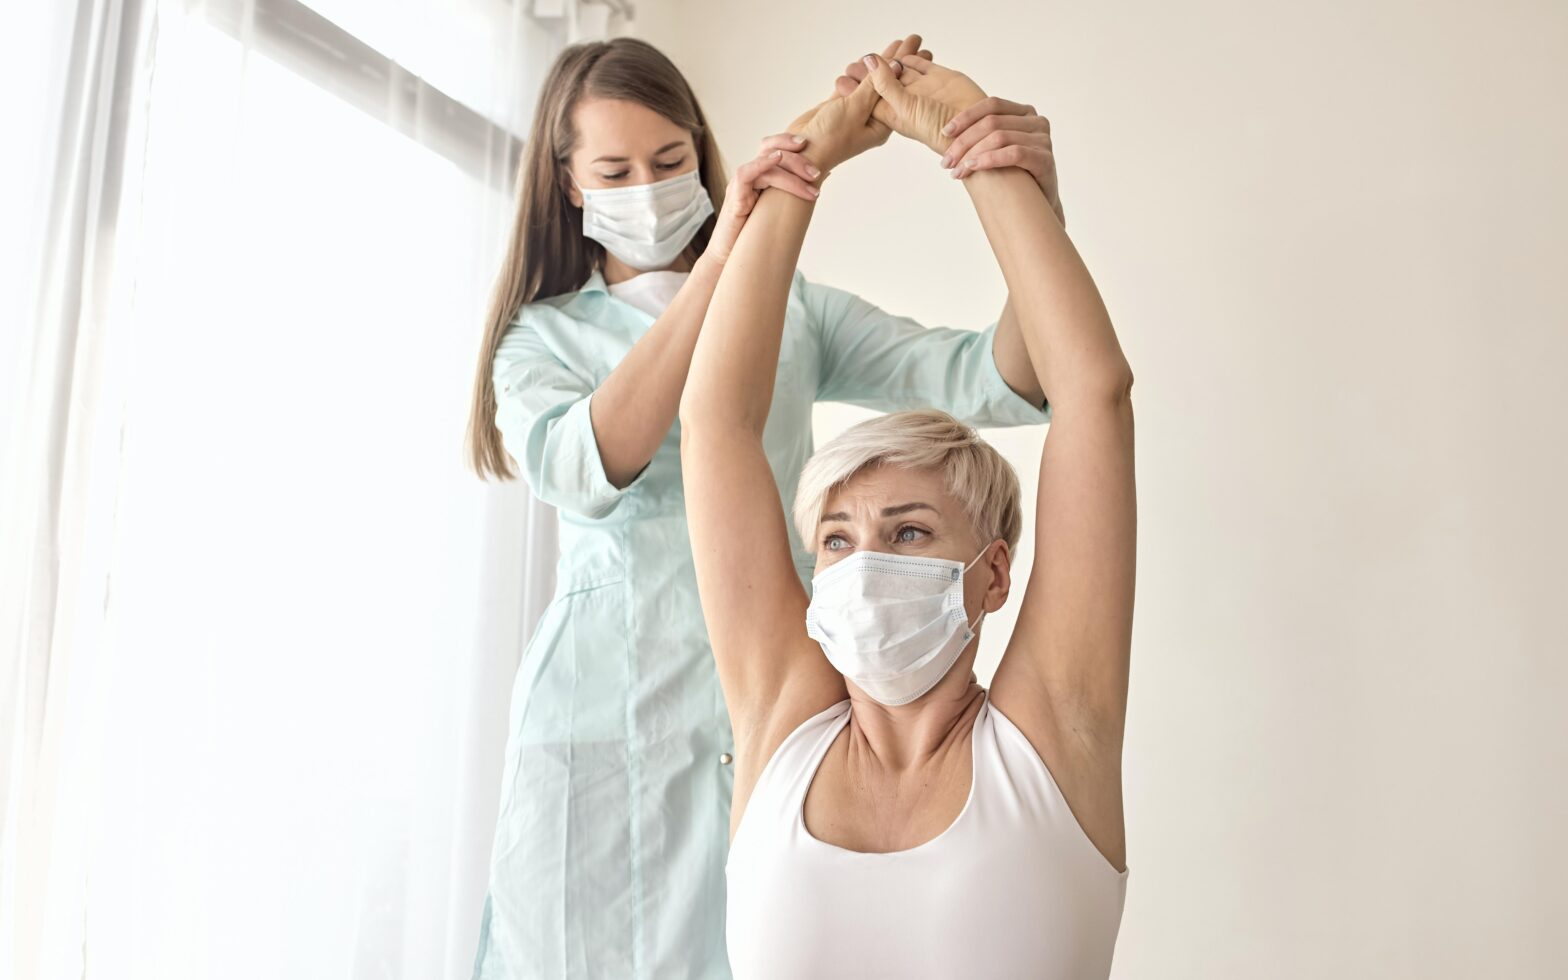 Female Patient Undergoing Therapy With Physiotherapist 1568x980